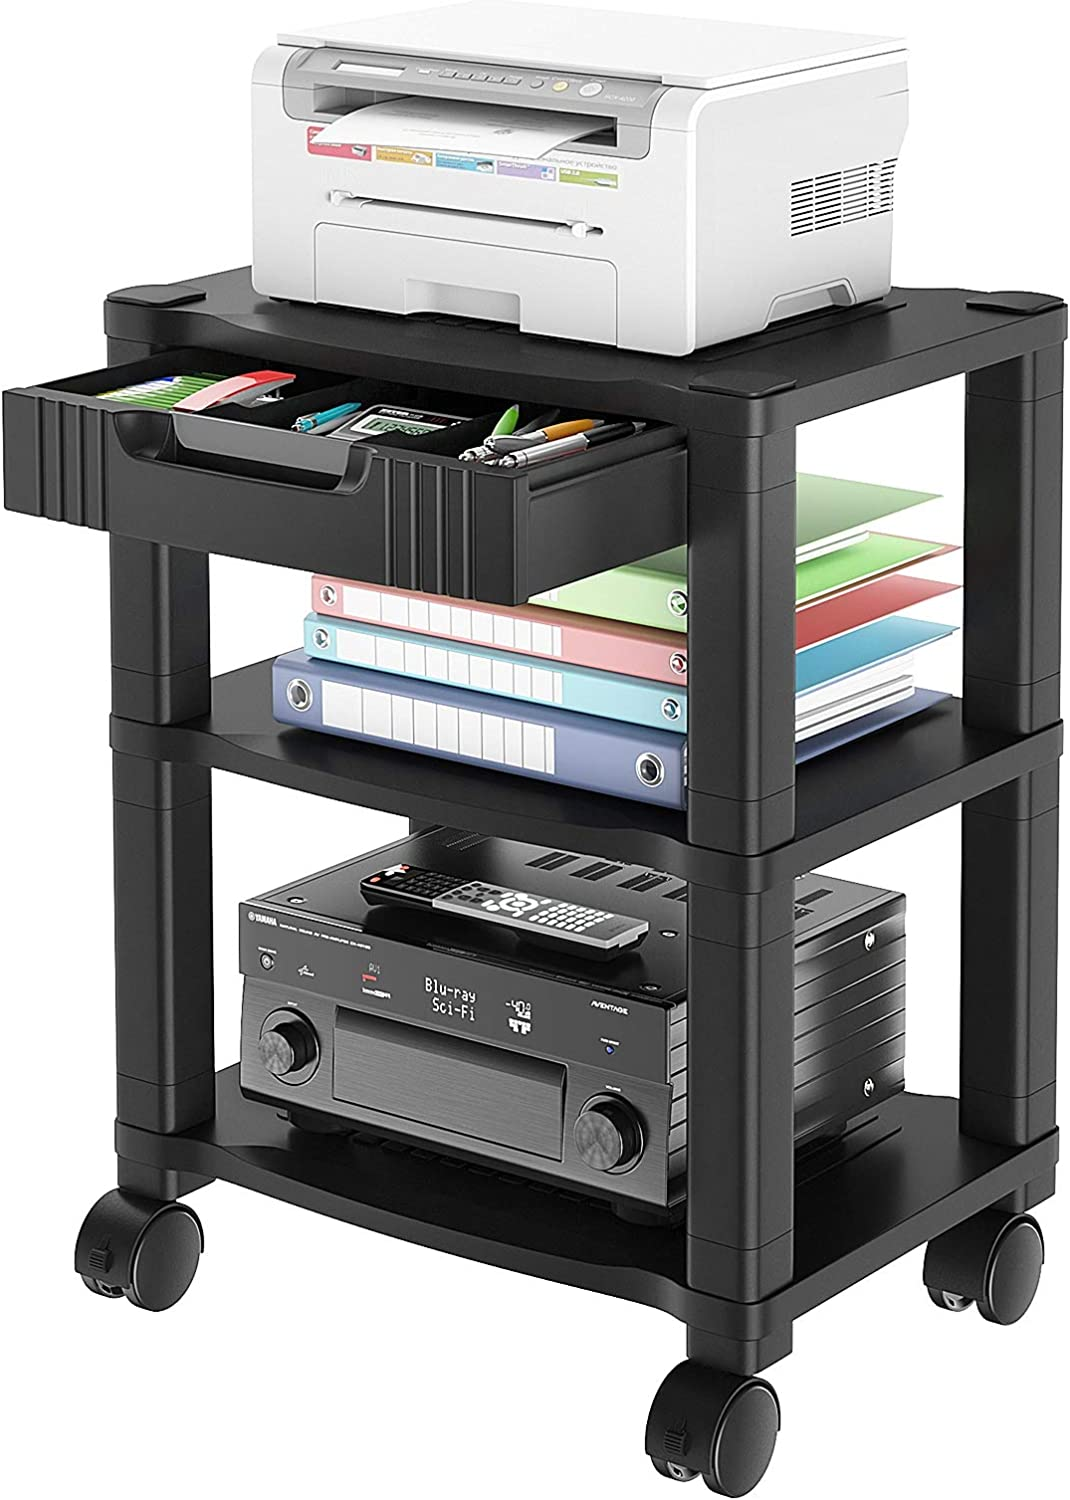 AMERIERGO Printer Stand with Drawer - 3 Tier Height Adjustable Printer Cart, Rolling Printer Stand with 4 Wheels, Mobile Printer Table with Storage Shelf & Cable Management for Printer, Scanner & Fax